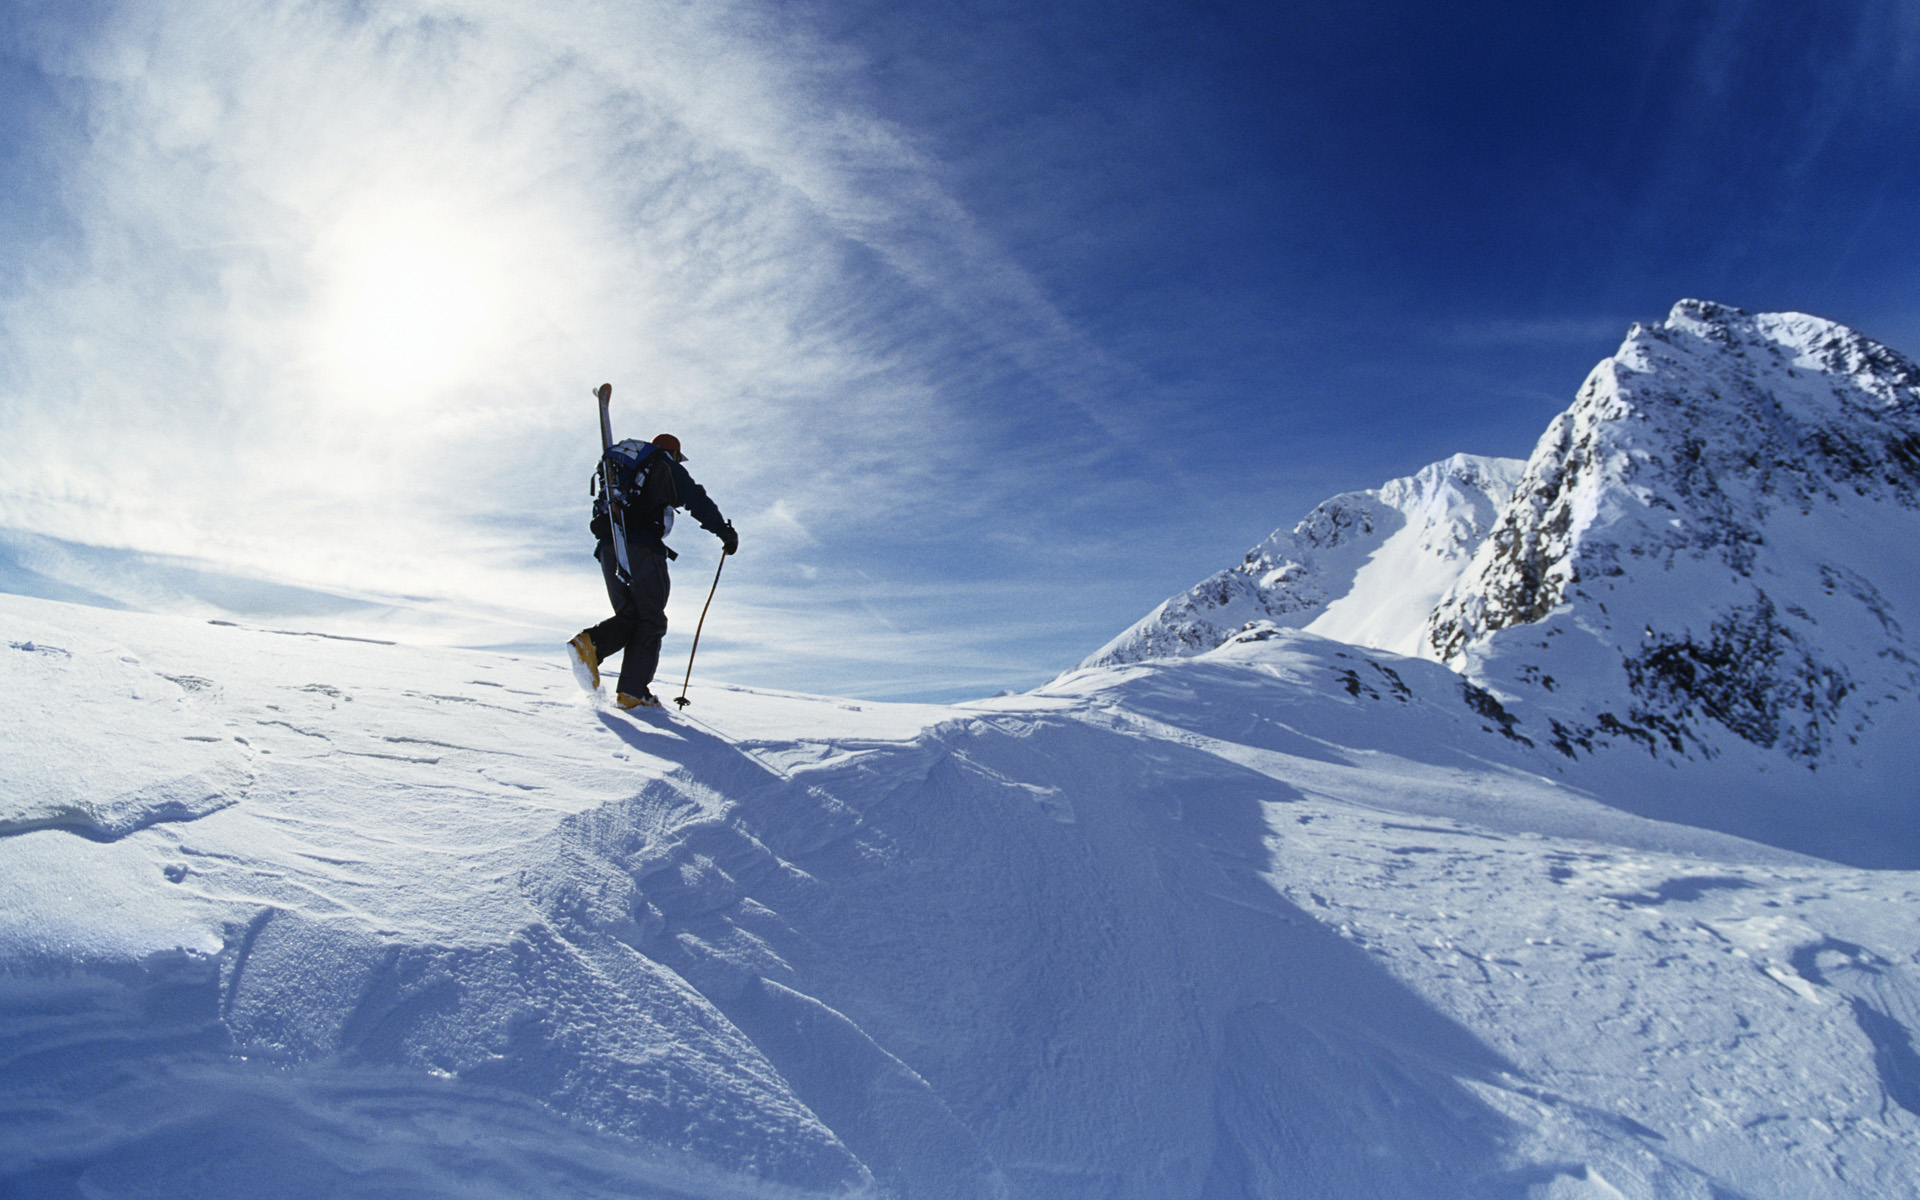 Winter Extreme Sports Wallpapers